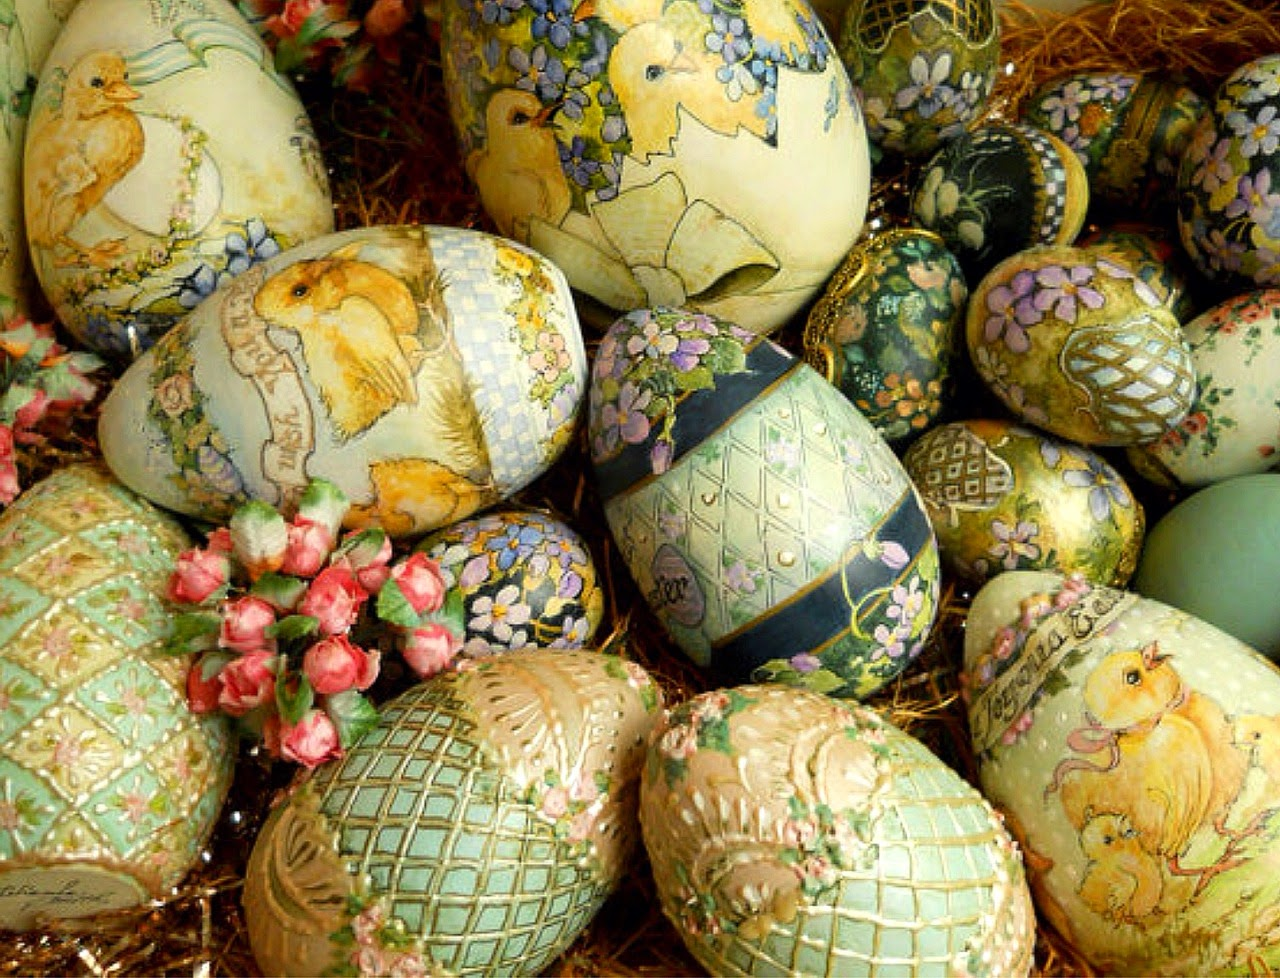 Happy Easter 2015 To Readers Of I Heart Shabby Chic Blog